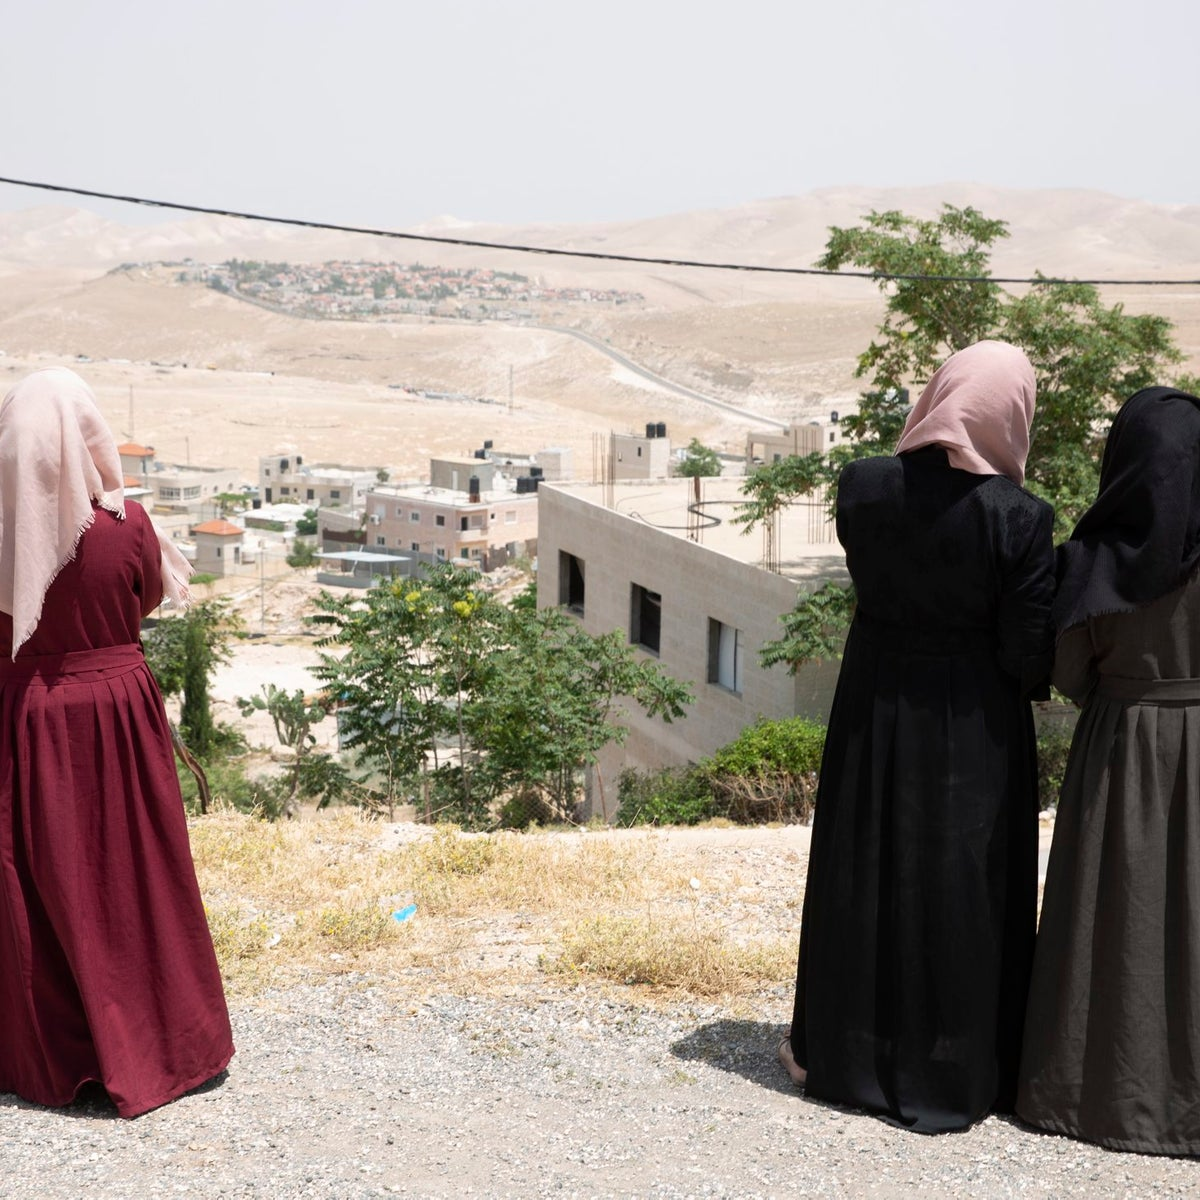 Women from the Jalahin Bedouin tribe in the West Bank, May 27, 2018.